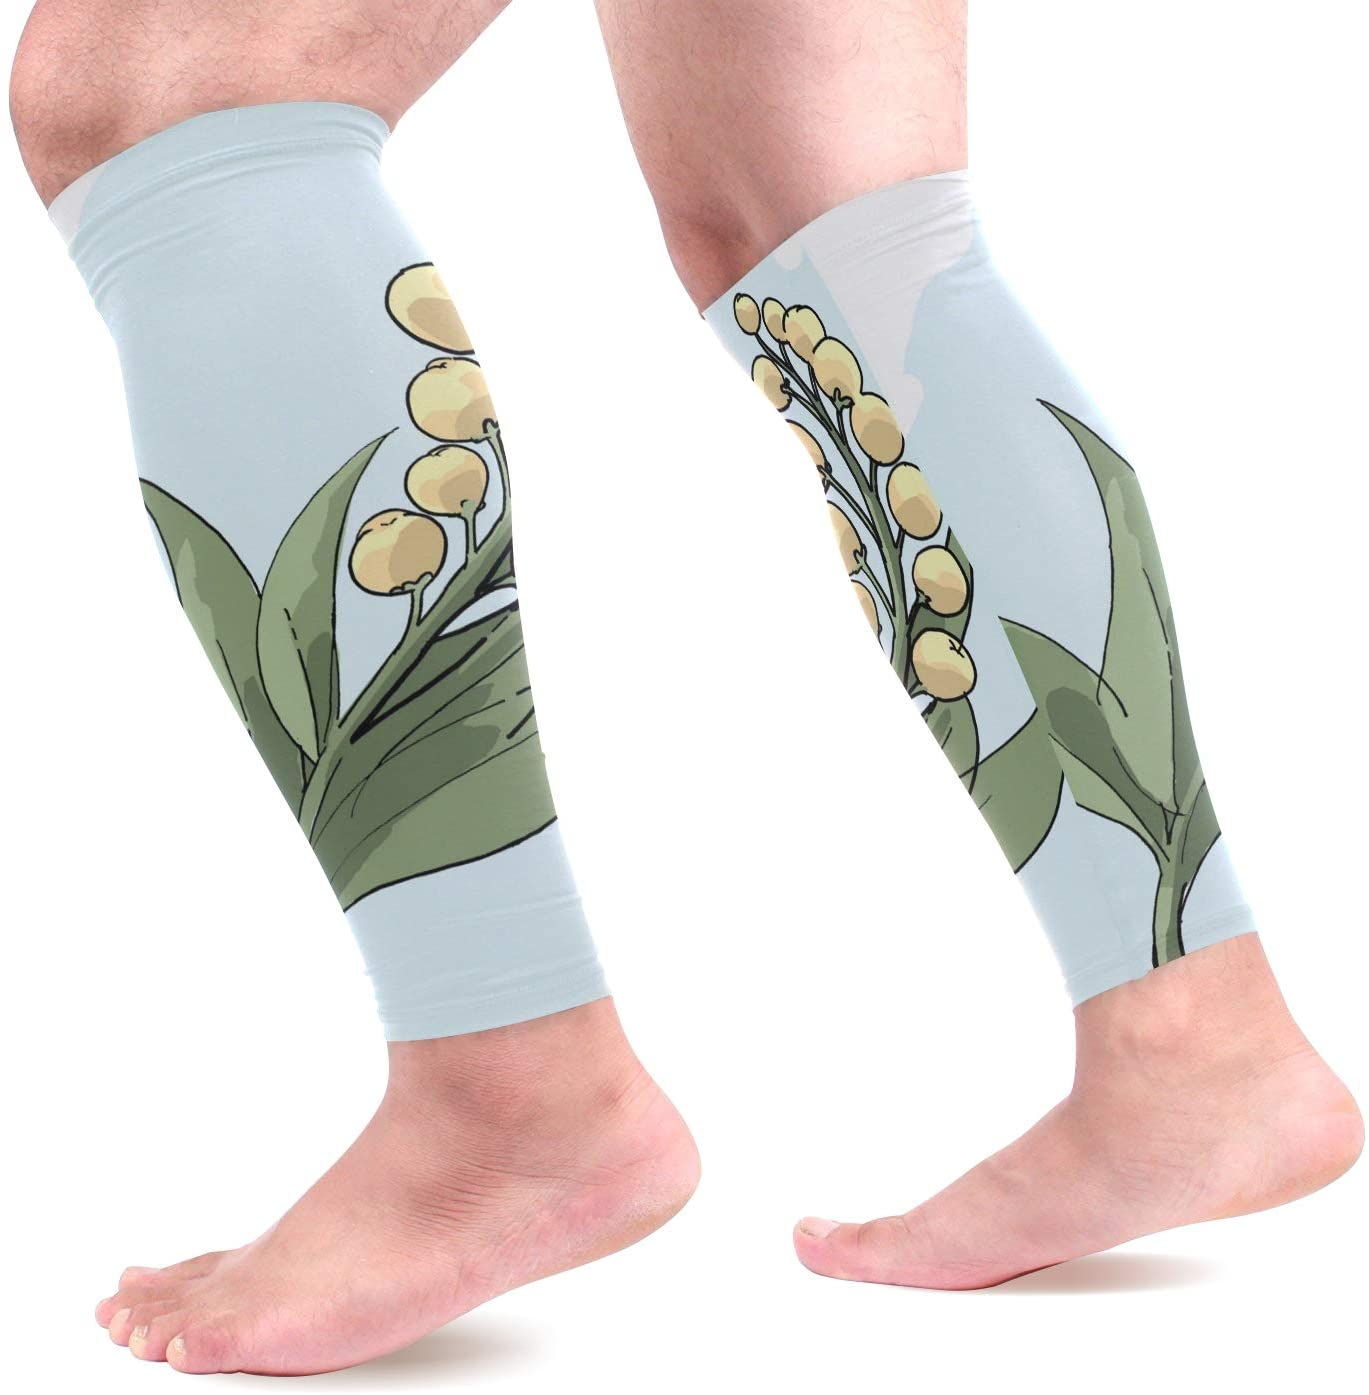 Calf Compression Sleeves A Tropical Fruit Leg Compression Socks for Runners, Shin Splint, Varicose Vein & Calf Pain Relief - Calf Guard for Running, Cycling, Maternity, Travel, Nurses Women